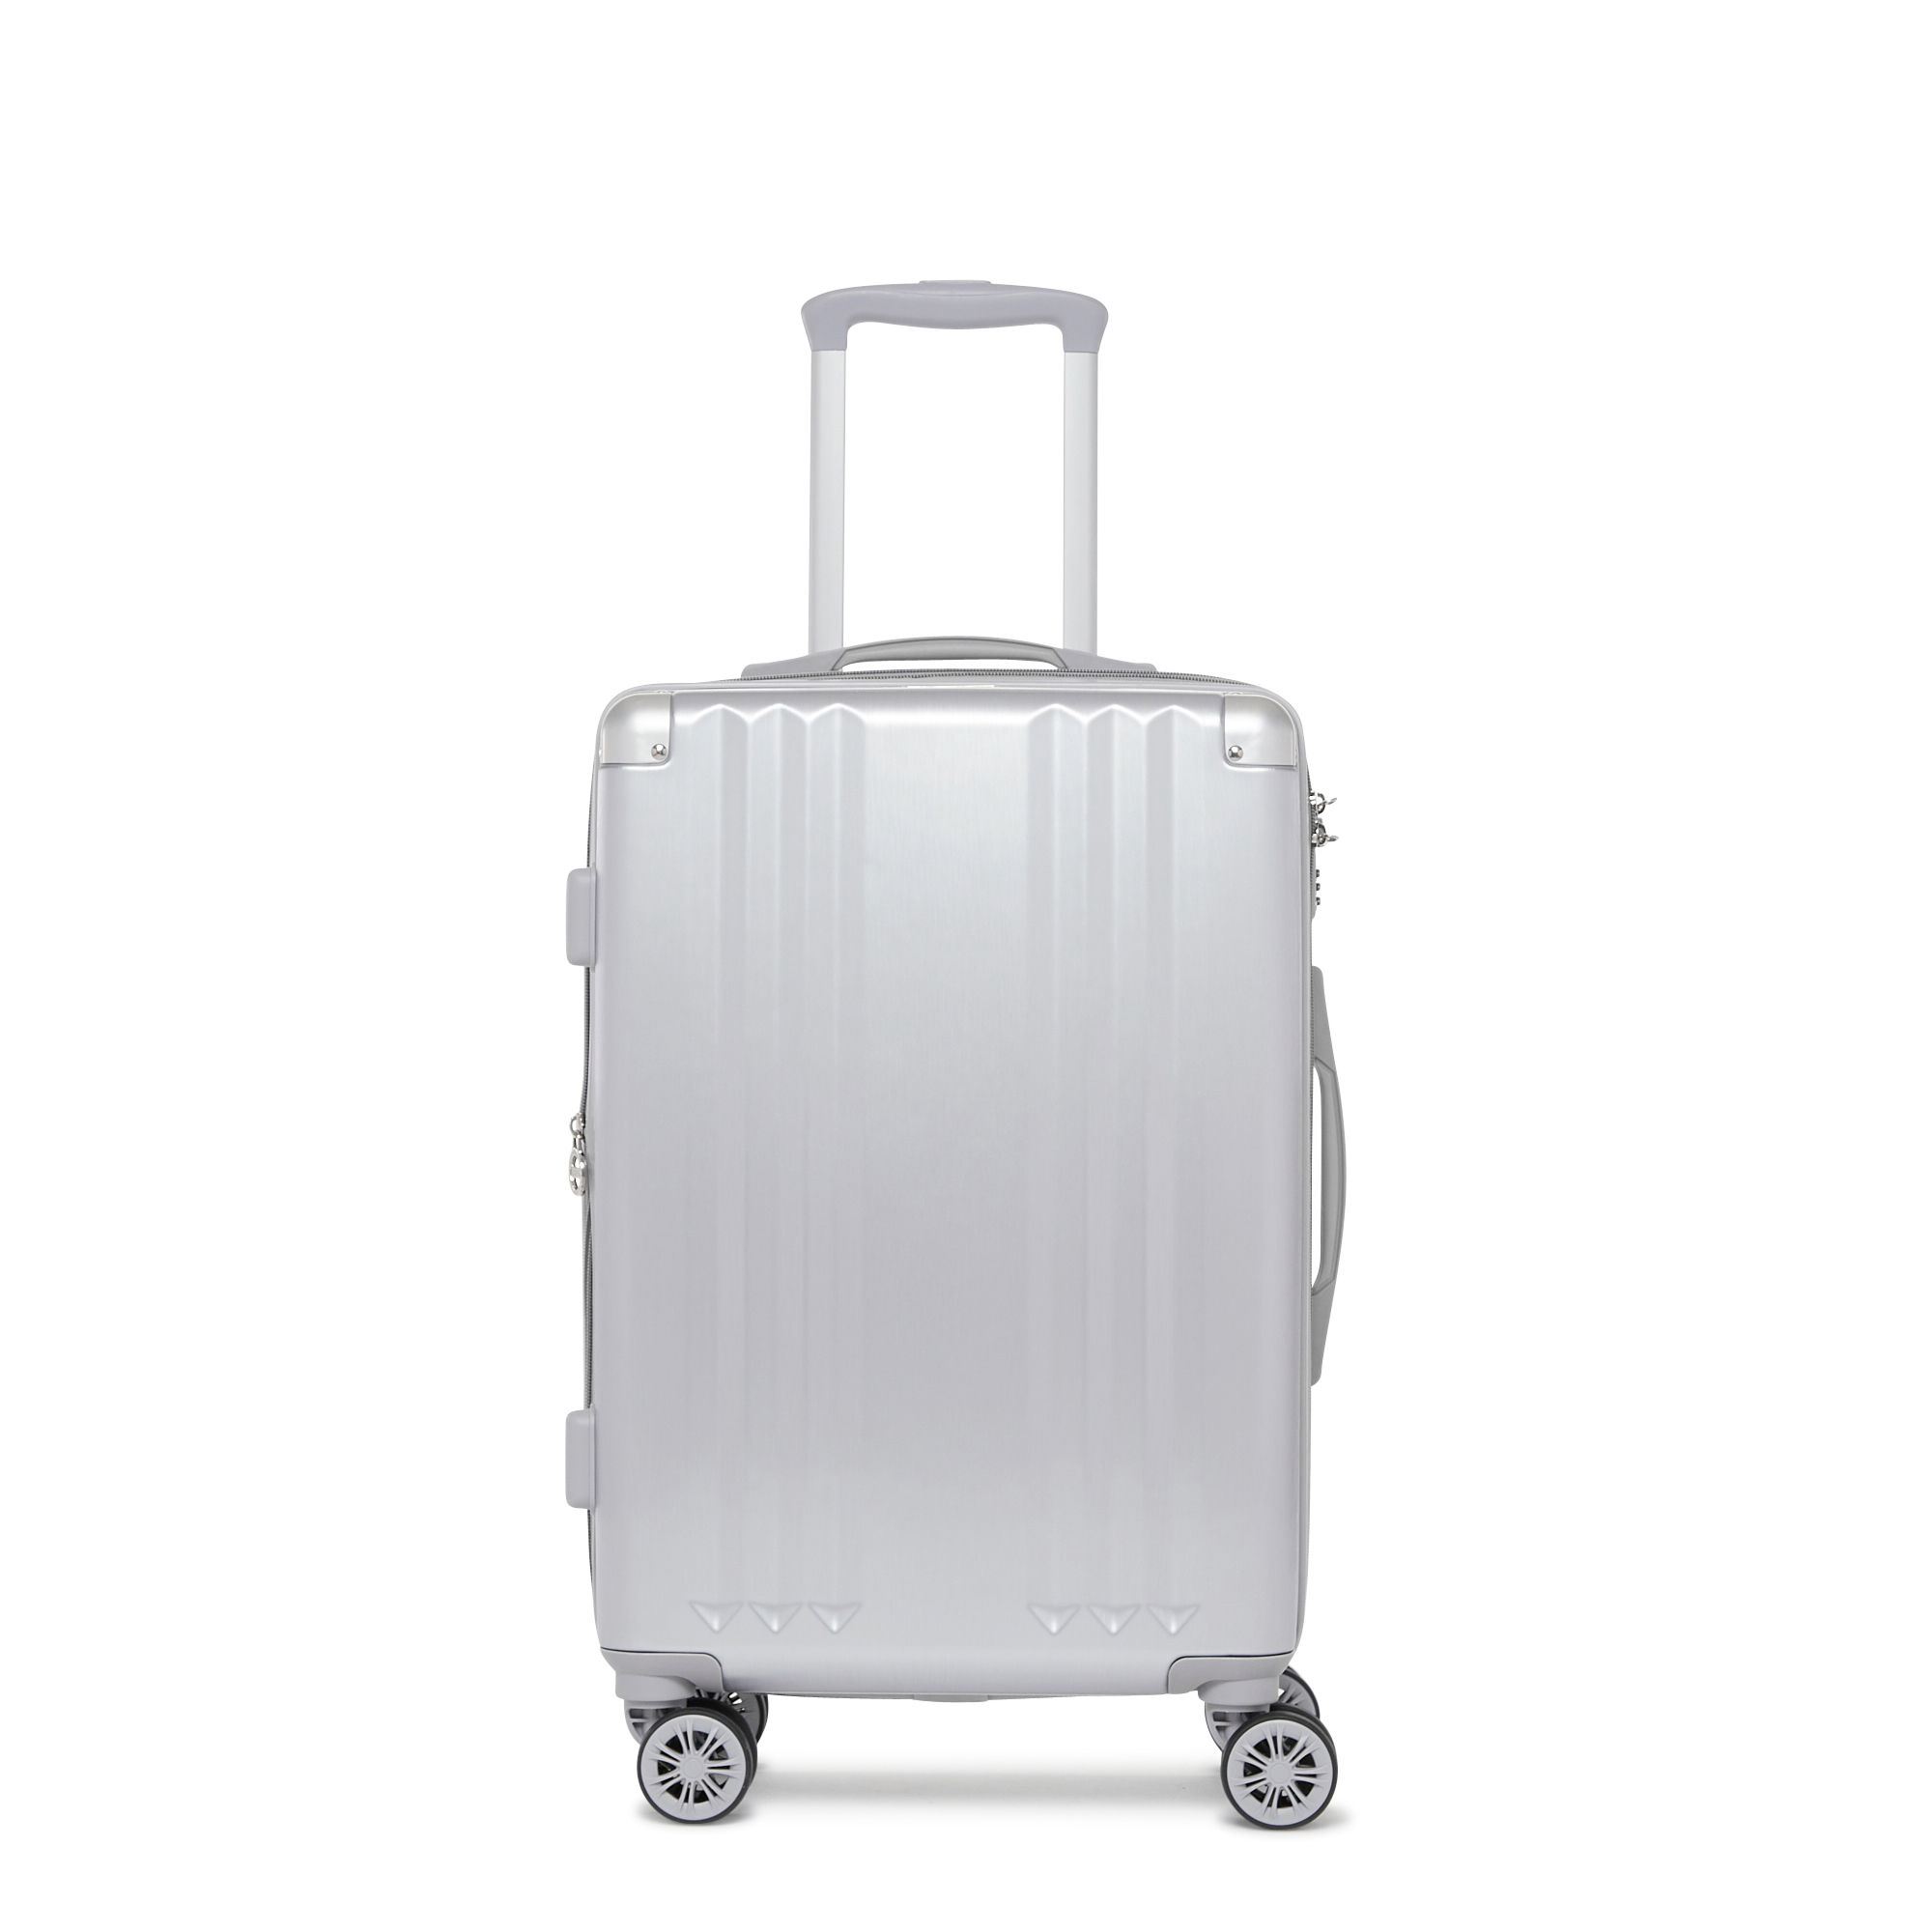 Carry-Ons - Maybe your road trip is longer than a weekend getaway, OR maybe you're just an over packer. Either way, CALPAK carry-ons are compact, lightweight, durable and functional. There's a style and color for everyone so take your pick!